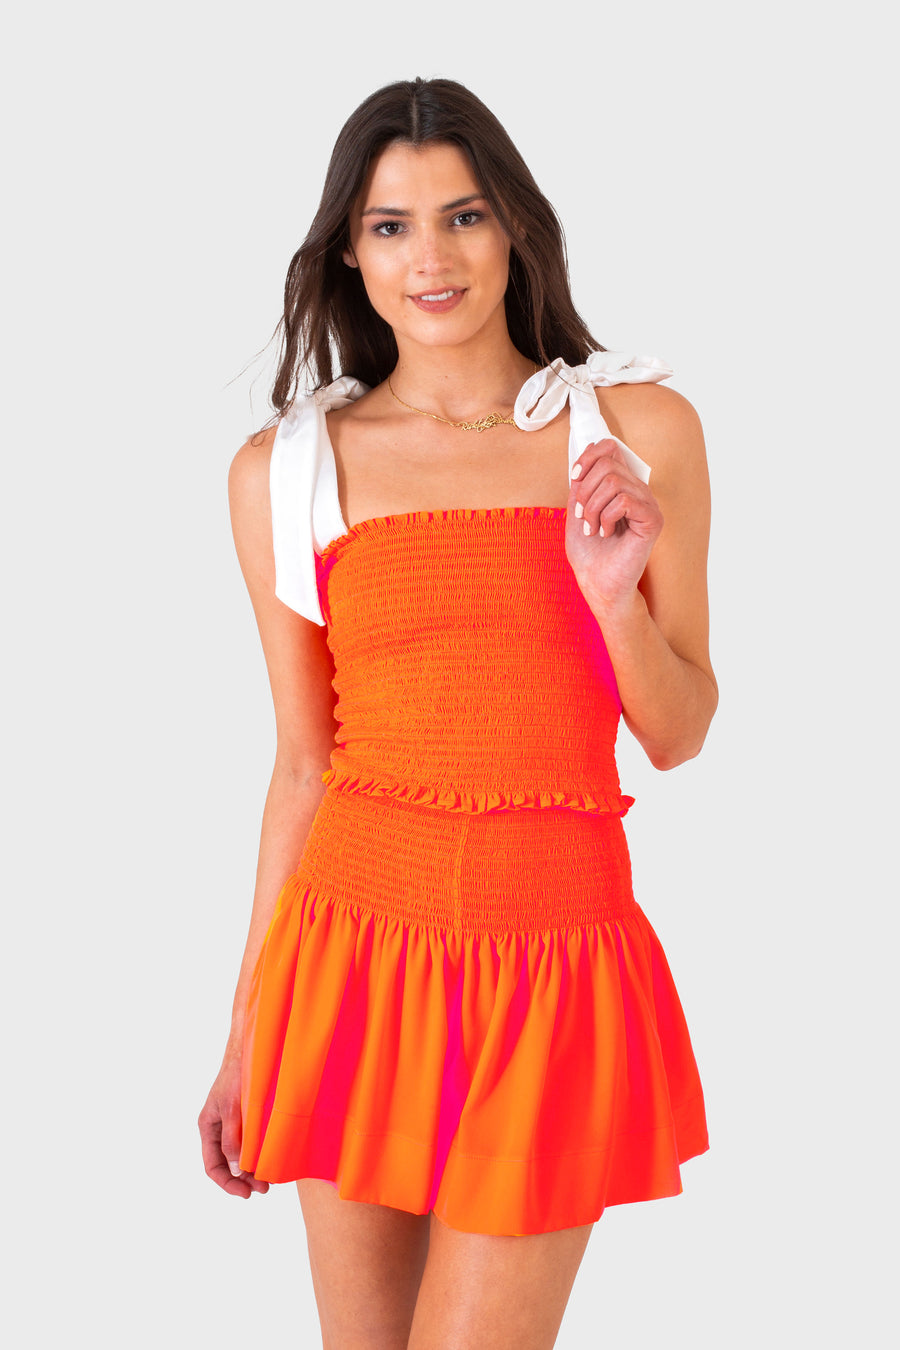 ERICA SKIRT NEON ORANGE *LIMITED*EDITION*